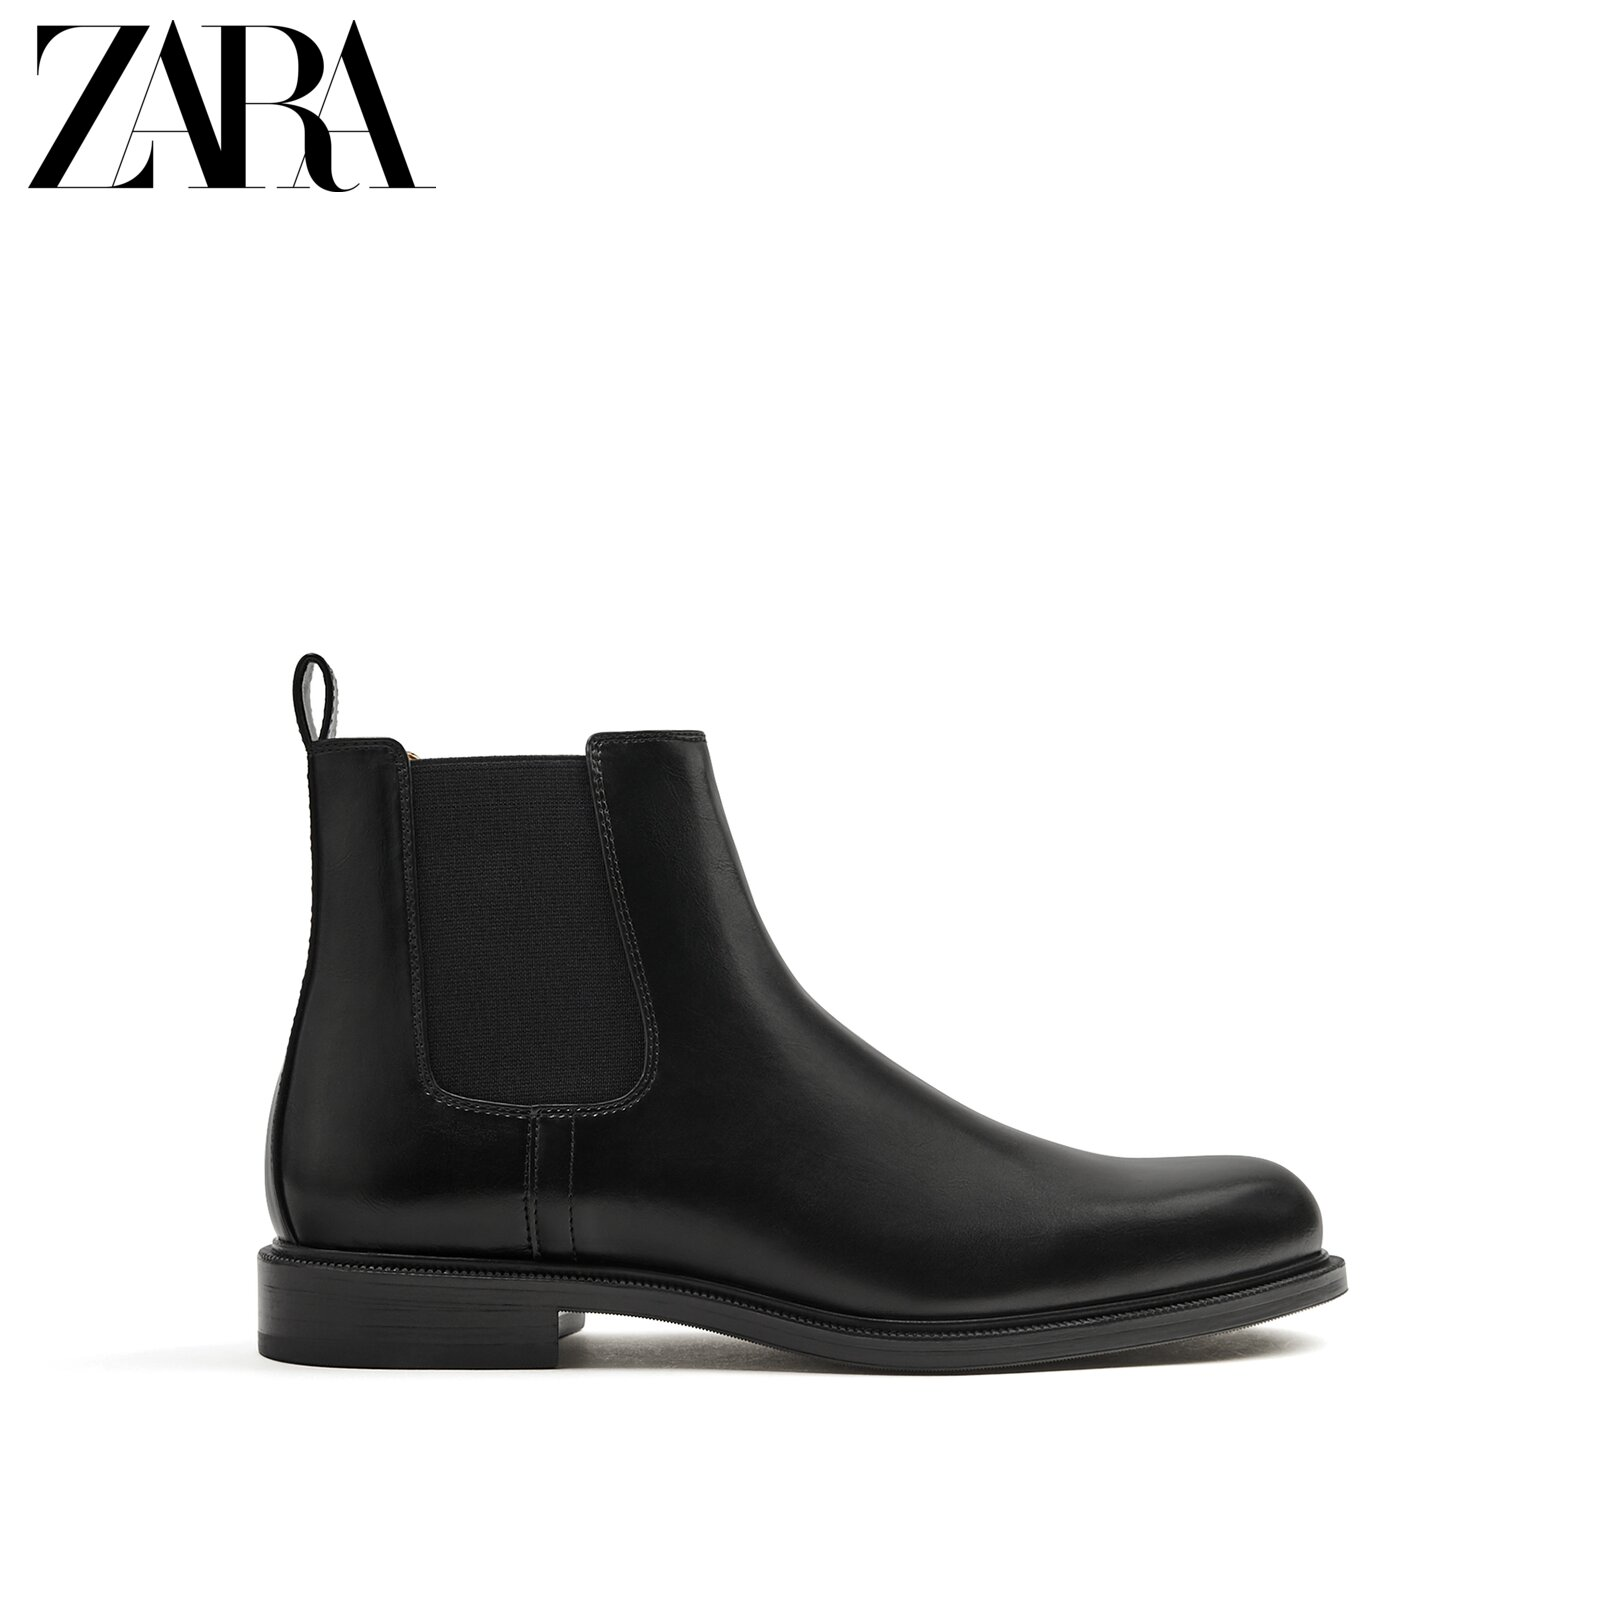 ZARA new men's shoes black retro wild classic trend chimney Chelsea short boots 12010720040